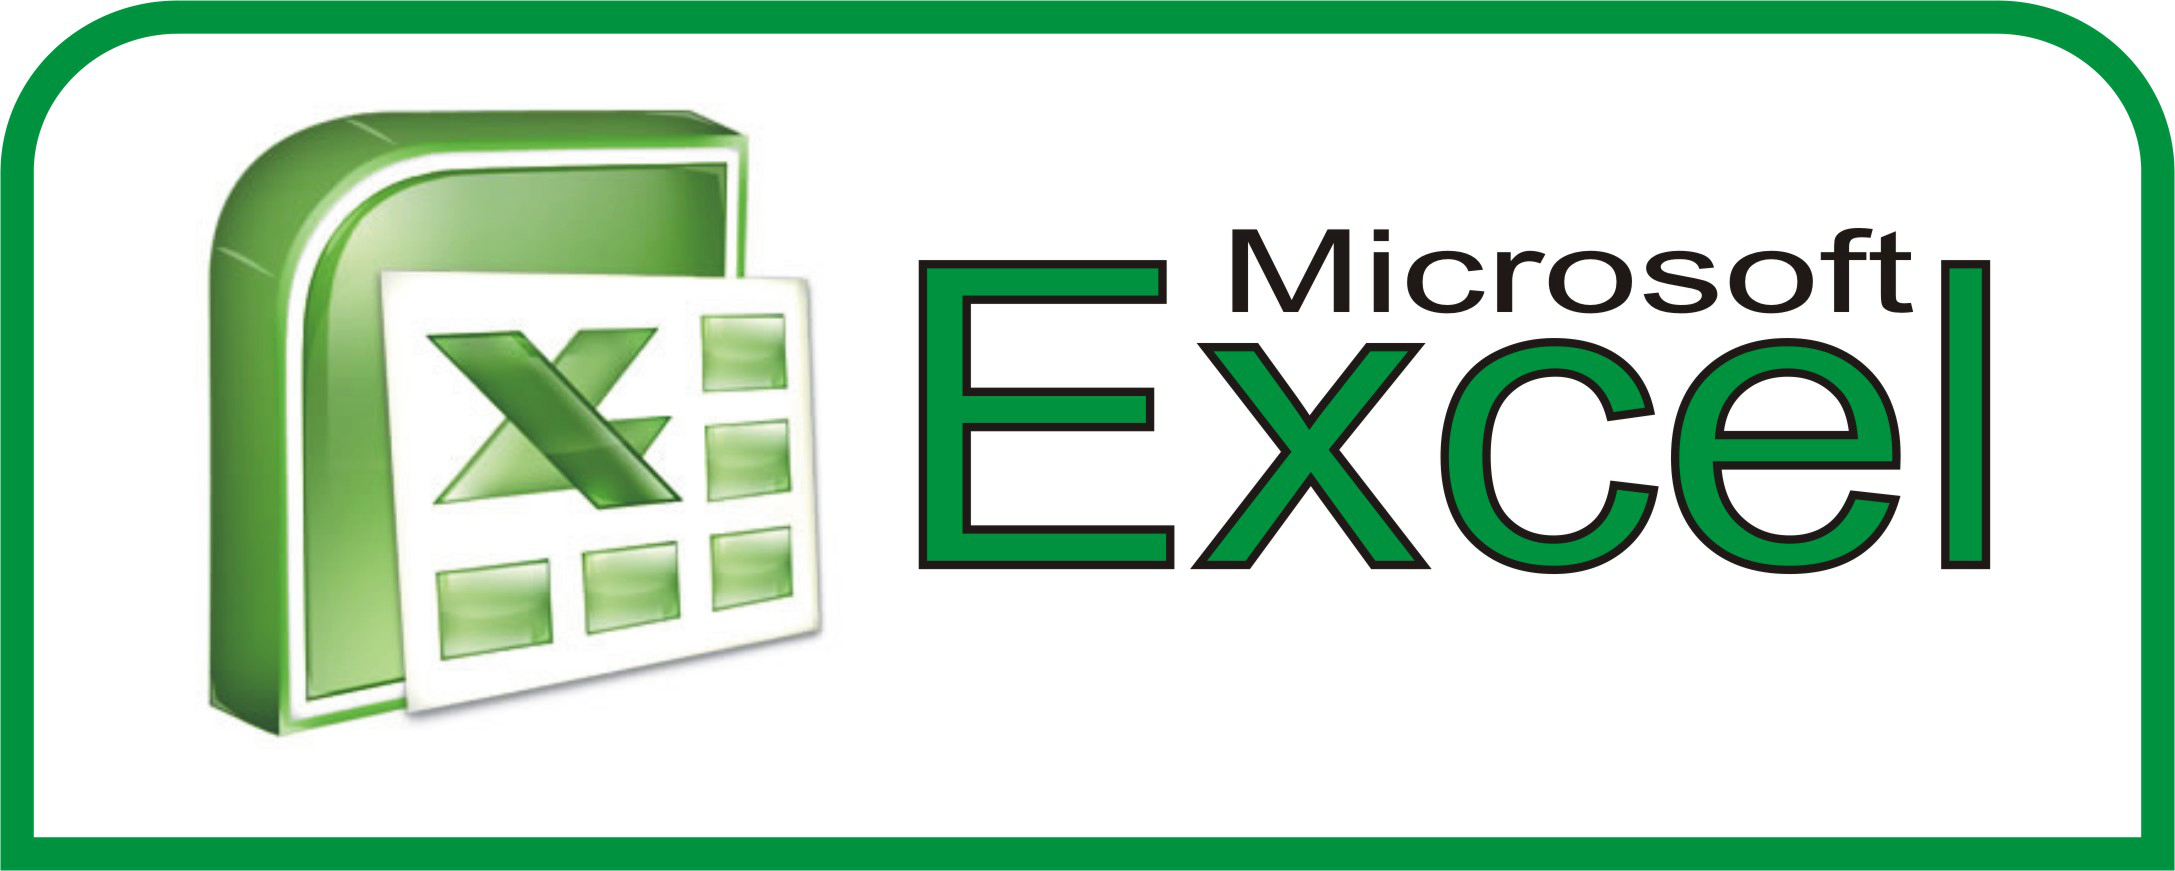 Ediblewildsus  Fascinating  Excel Shortcuts You Probably Didnt Know About  Techdissected With Outstanding Insinkerator Evolution Pro Excel Besides Remove Duplicates Excel  Furthermore Link Tables In Excel With Amusing Loan Excel Template Also Excel Date Now In Addition Excel  Data Table And How To Create An Order Form In Excel As Well As Microsoft Excel Driver Additionally Learn Basic Excel From Techdissectedcom With Ediblewildsus  Outstanding  Excel Shortcuts You Probably Didnt Know About  Techdissected With Amusing Insinkerator Evolution Pro Excel Besides Remove Duplicates Excel  Furthermore Link Tables In Excel And Fascinating Loan Excel Template Also Excel Date Now In Addition Excel  Data Table From Techdissectedcom